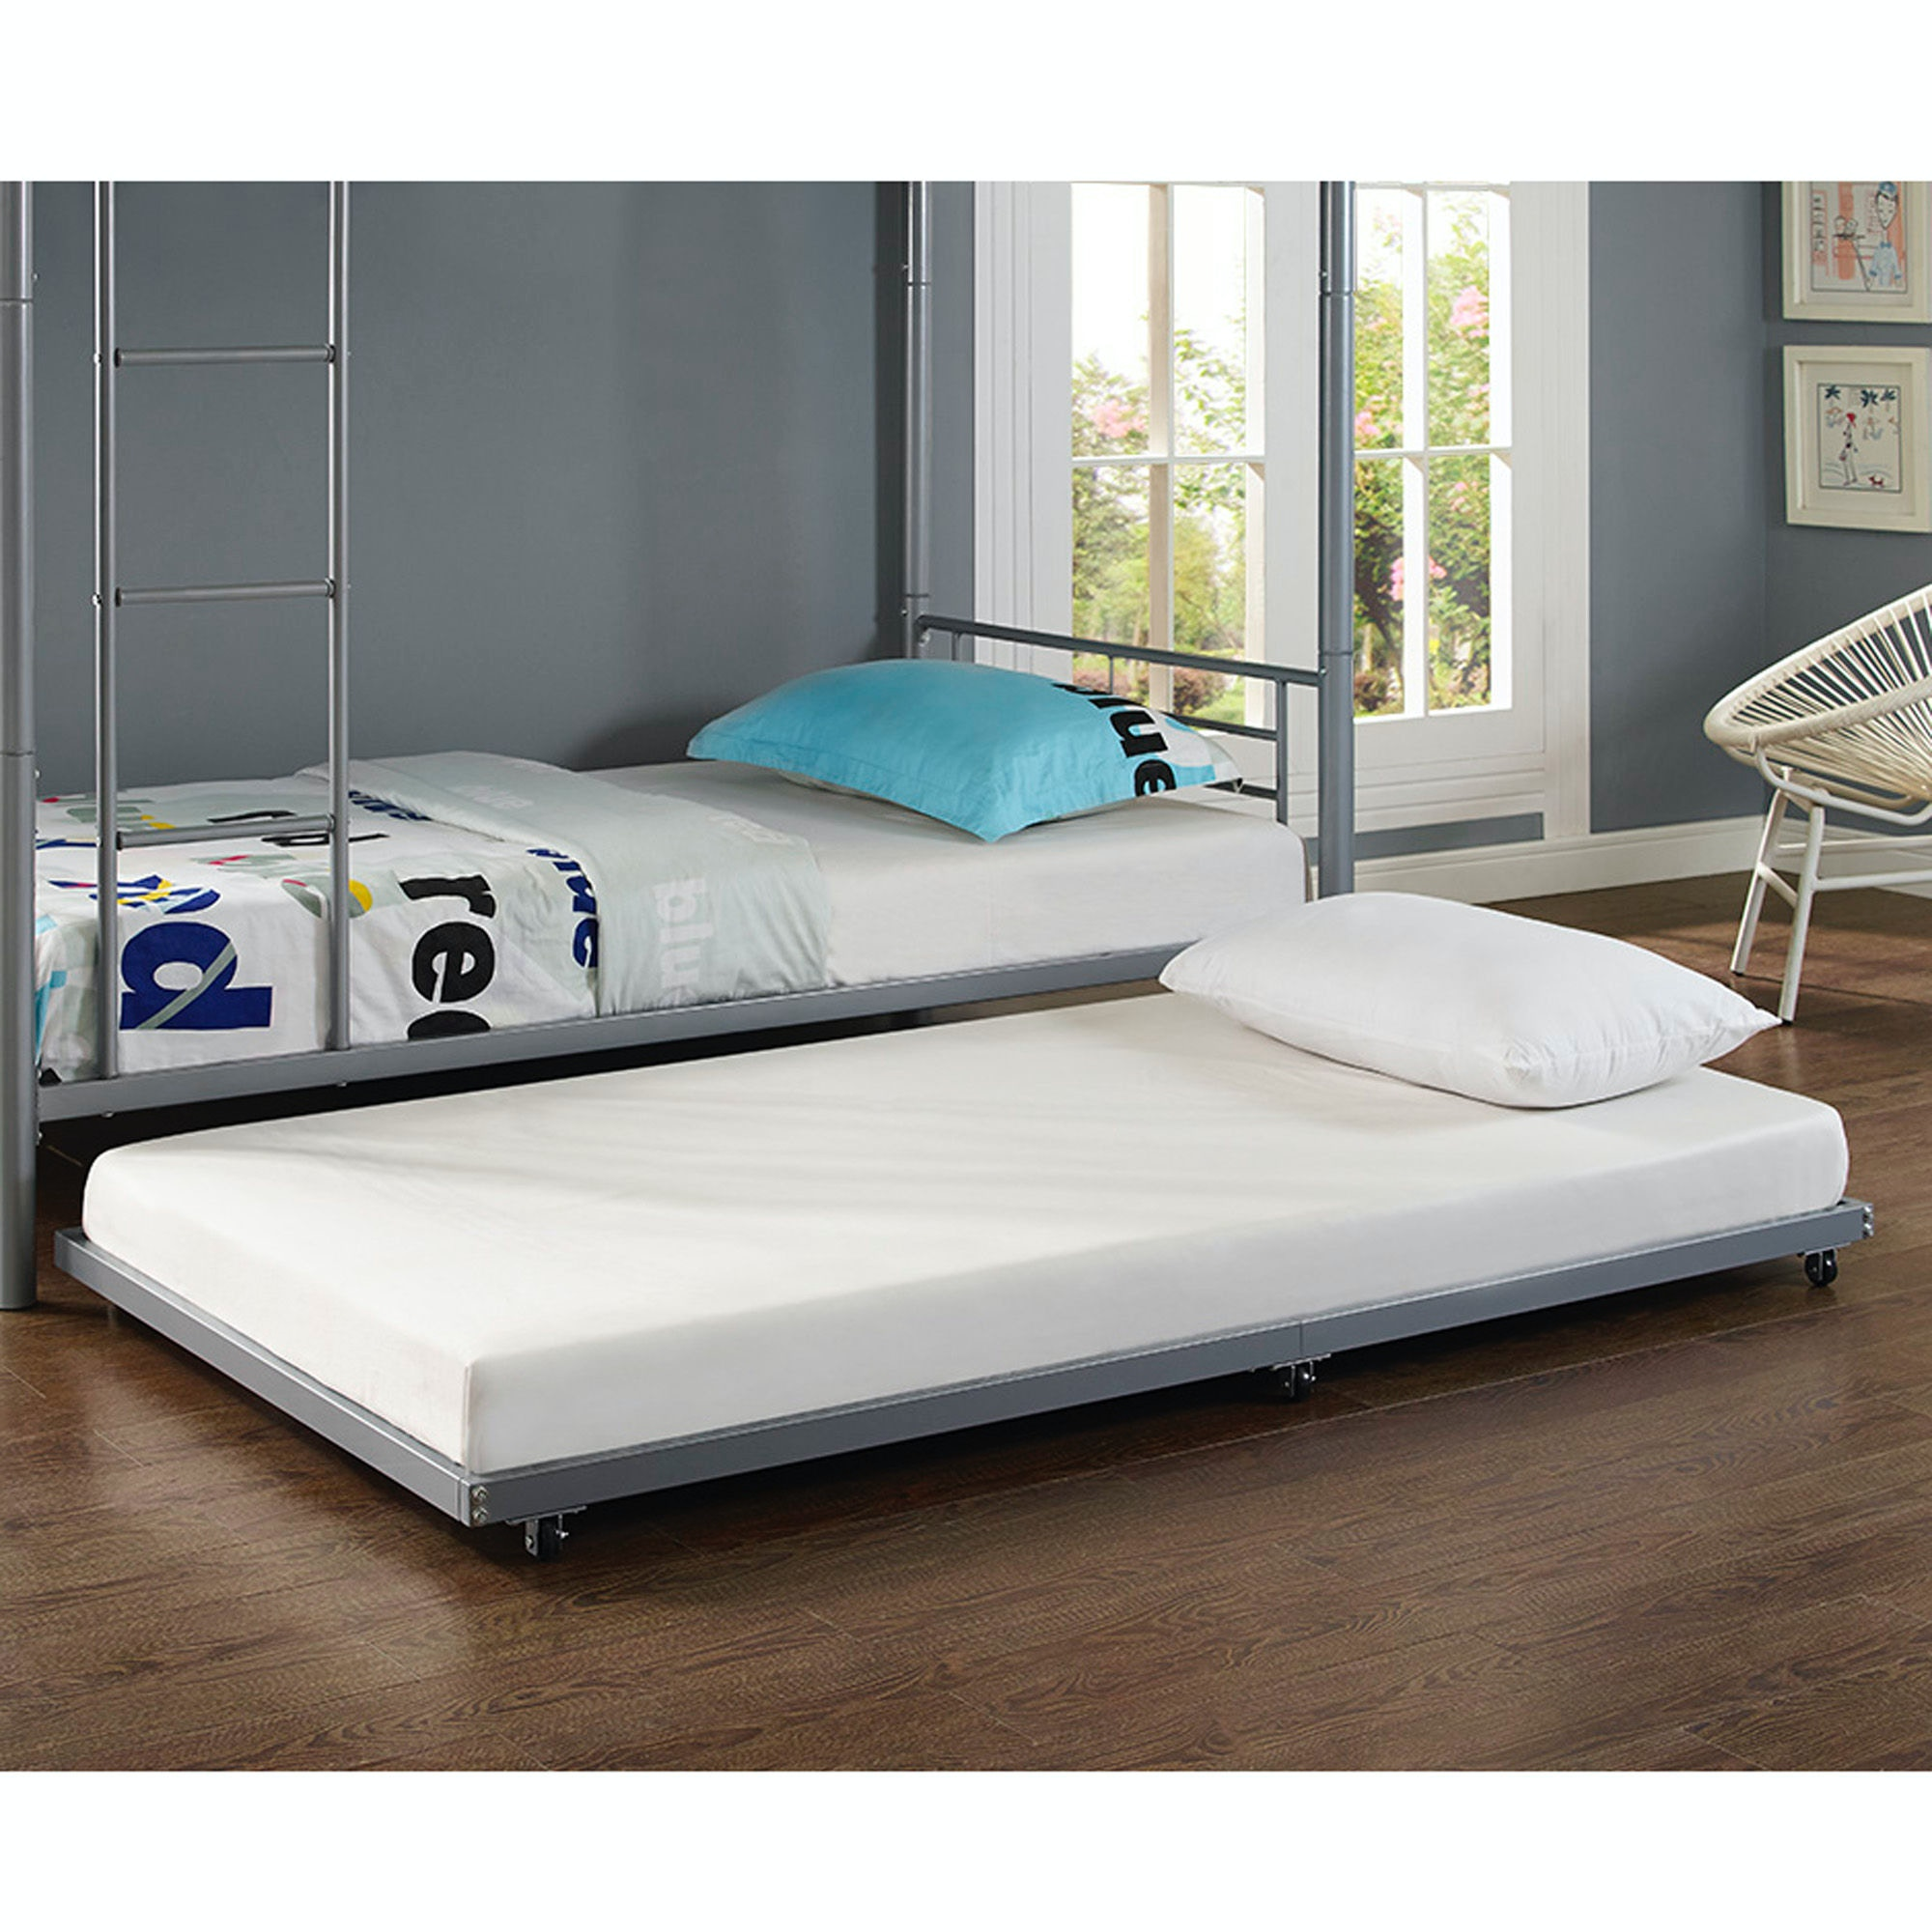 Twin Roll Out Trundle Bed Frame WEDBT40TBSL